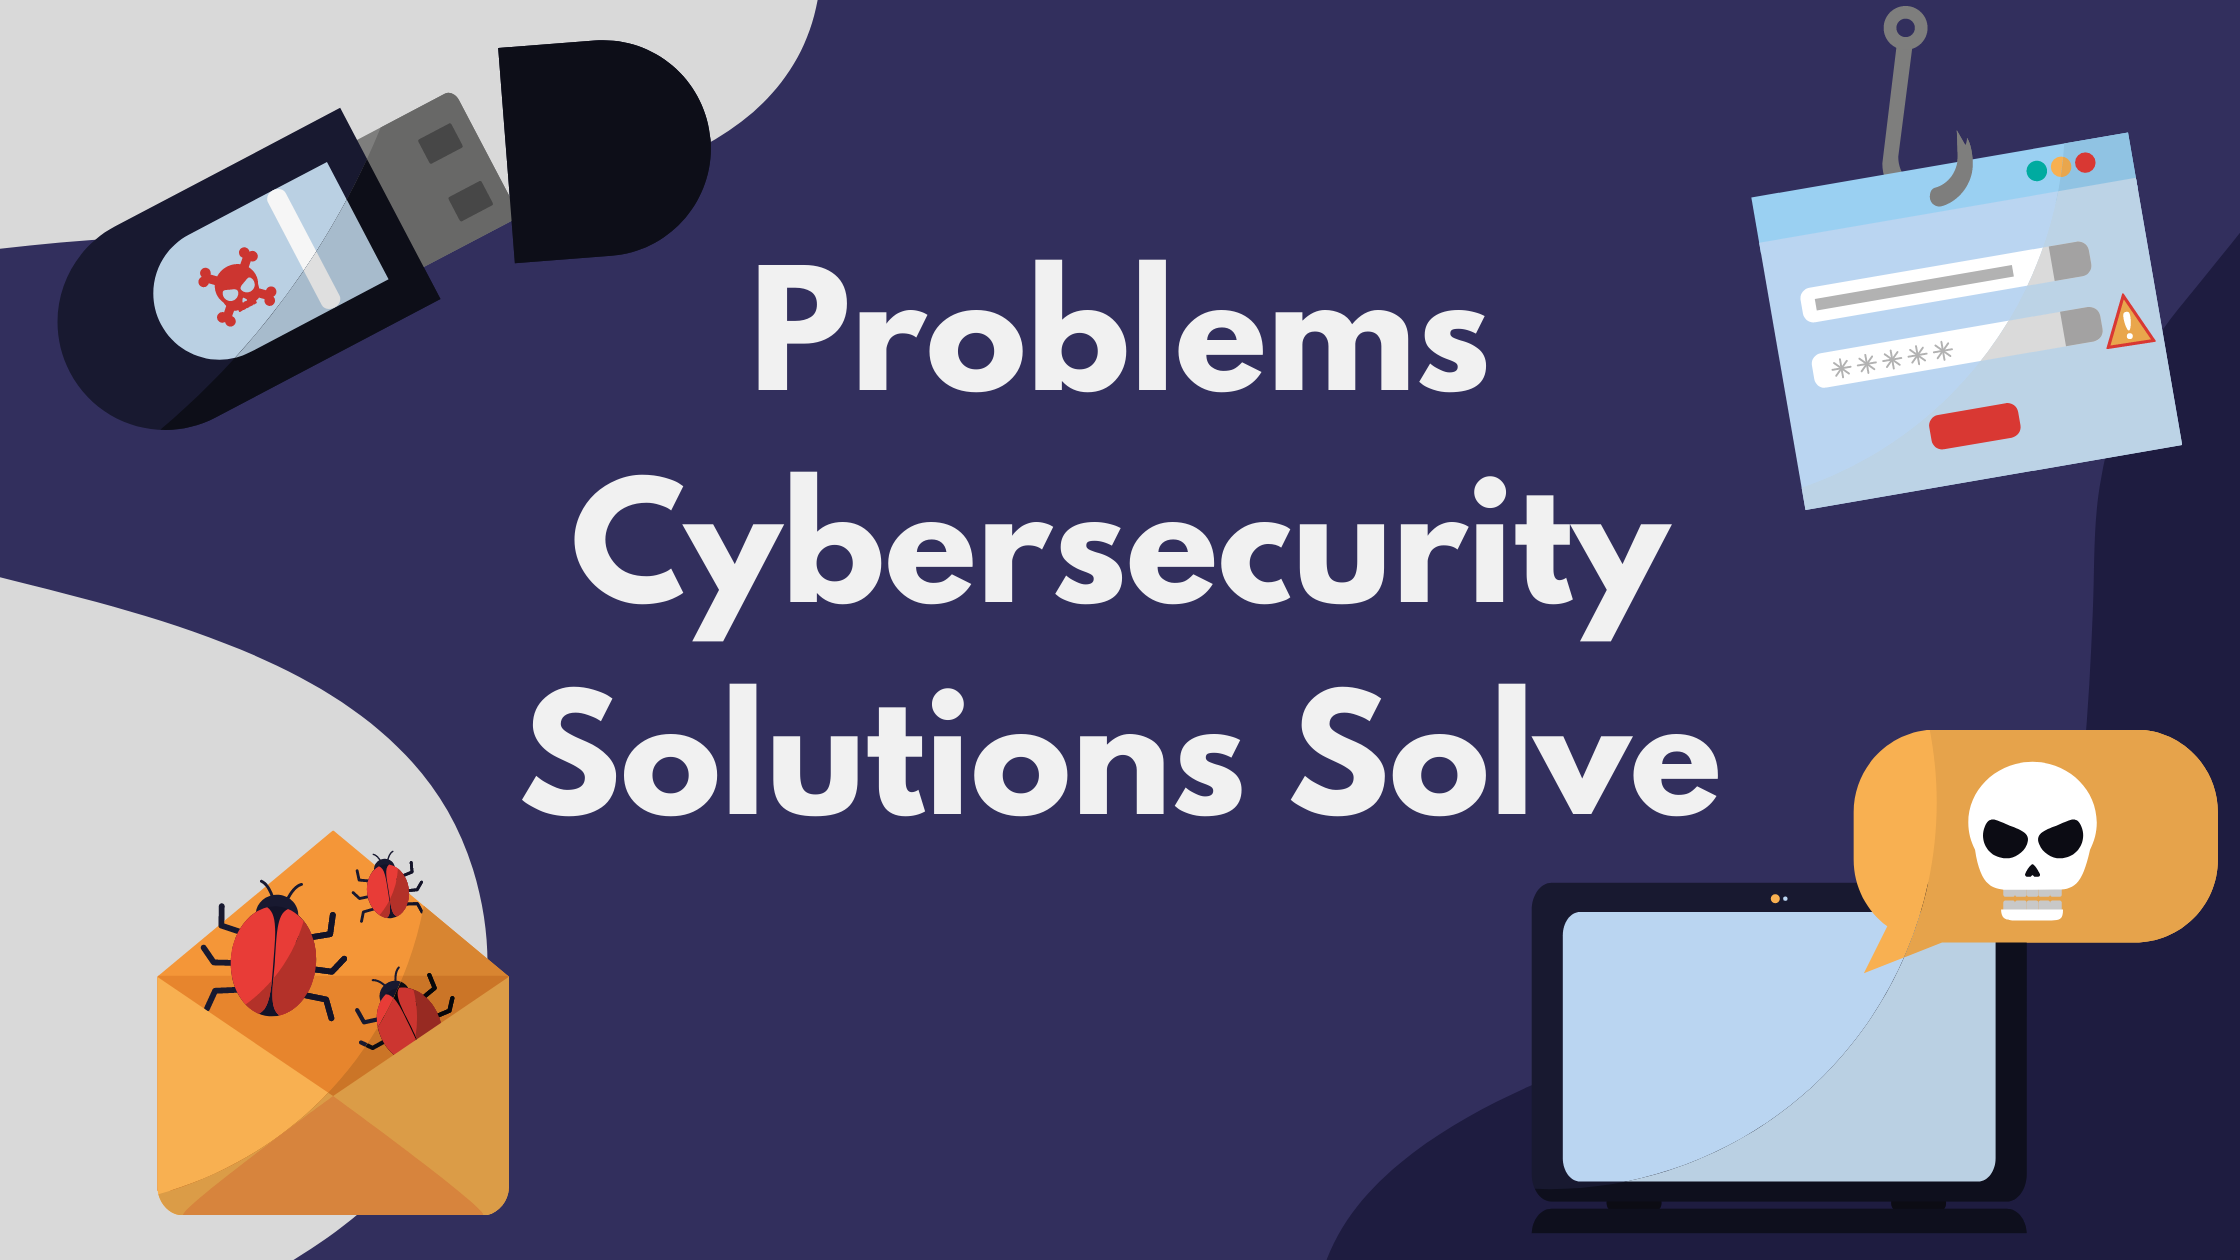 roblems Cybersecurity Solutions Solve